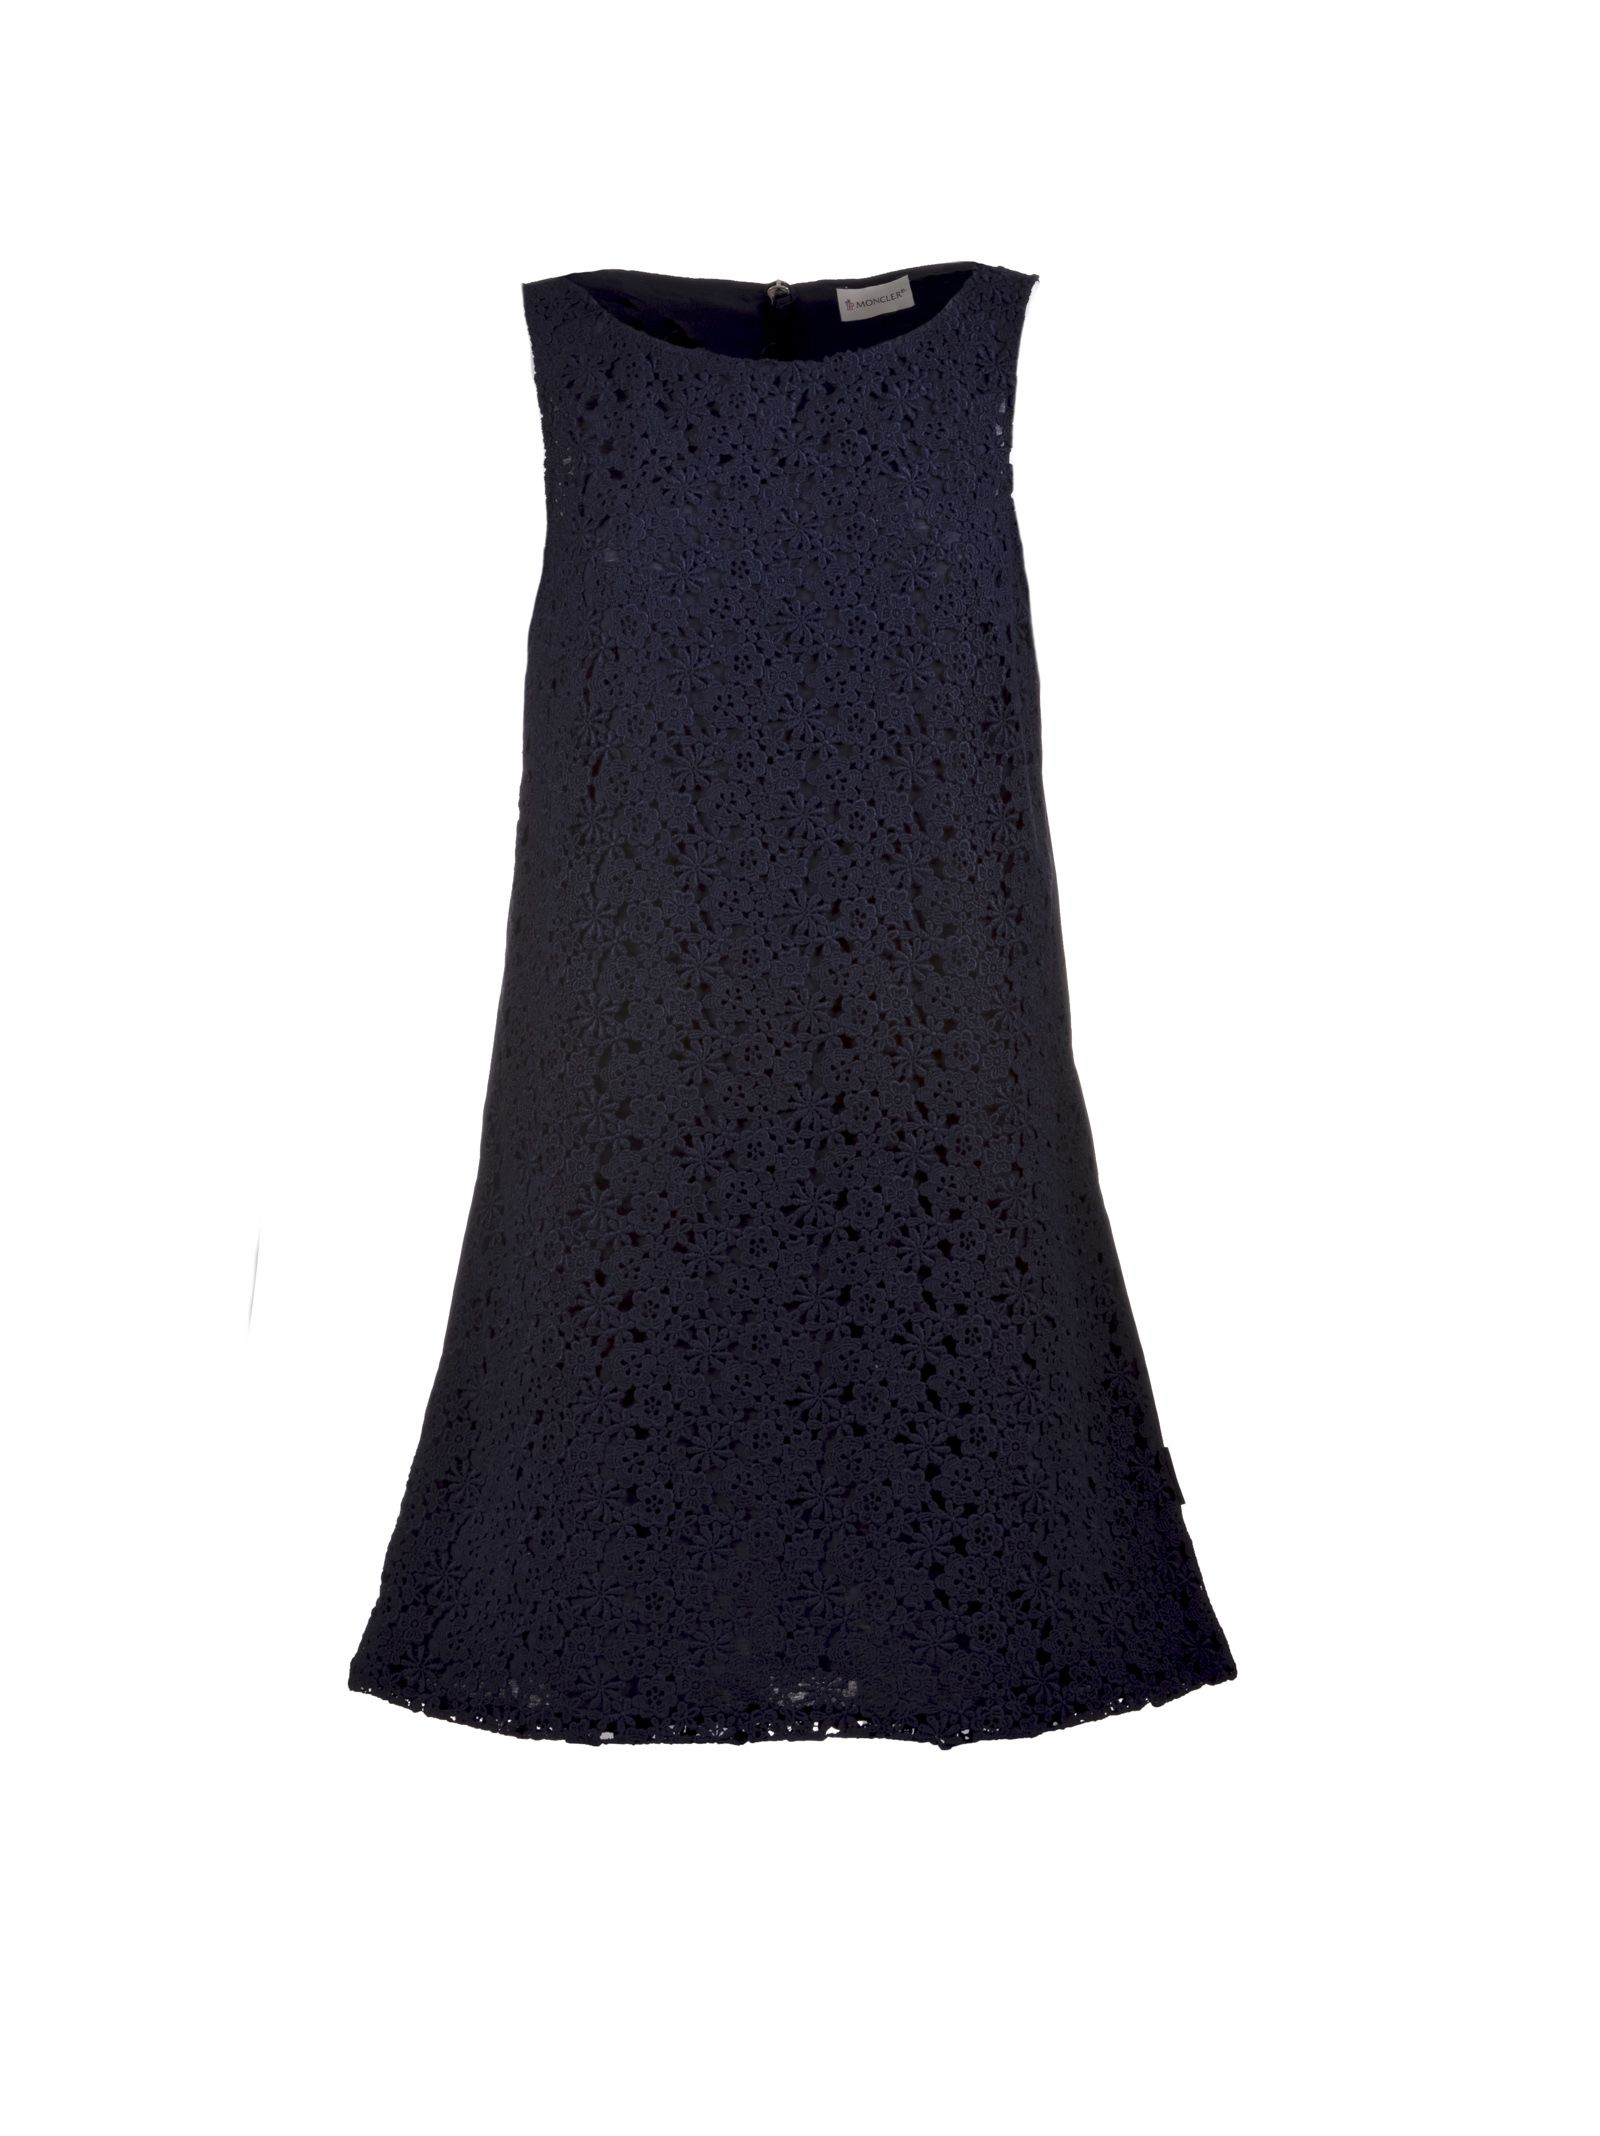 Moncler Floral Lace Shift Dress